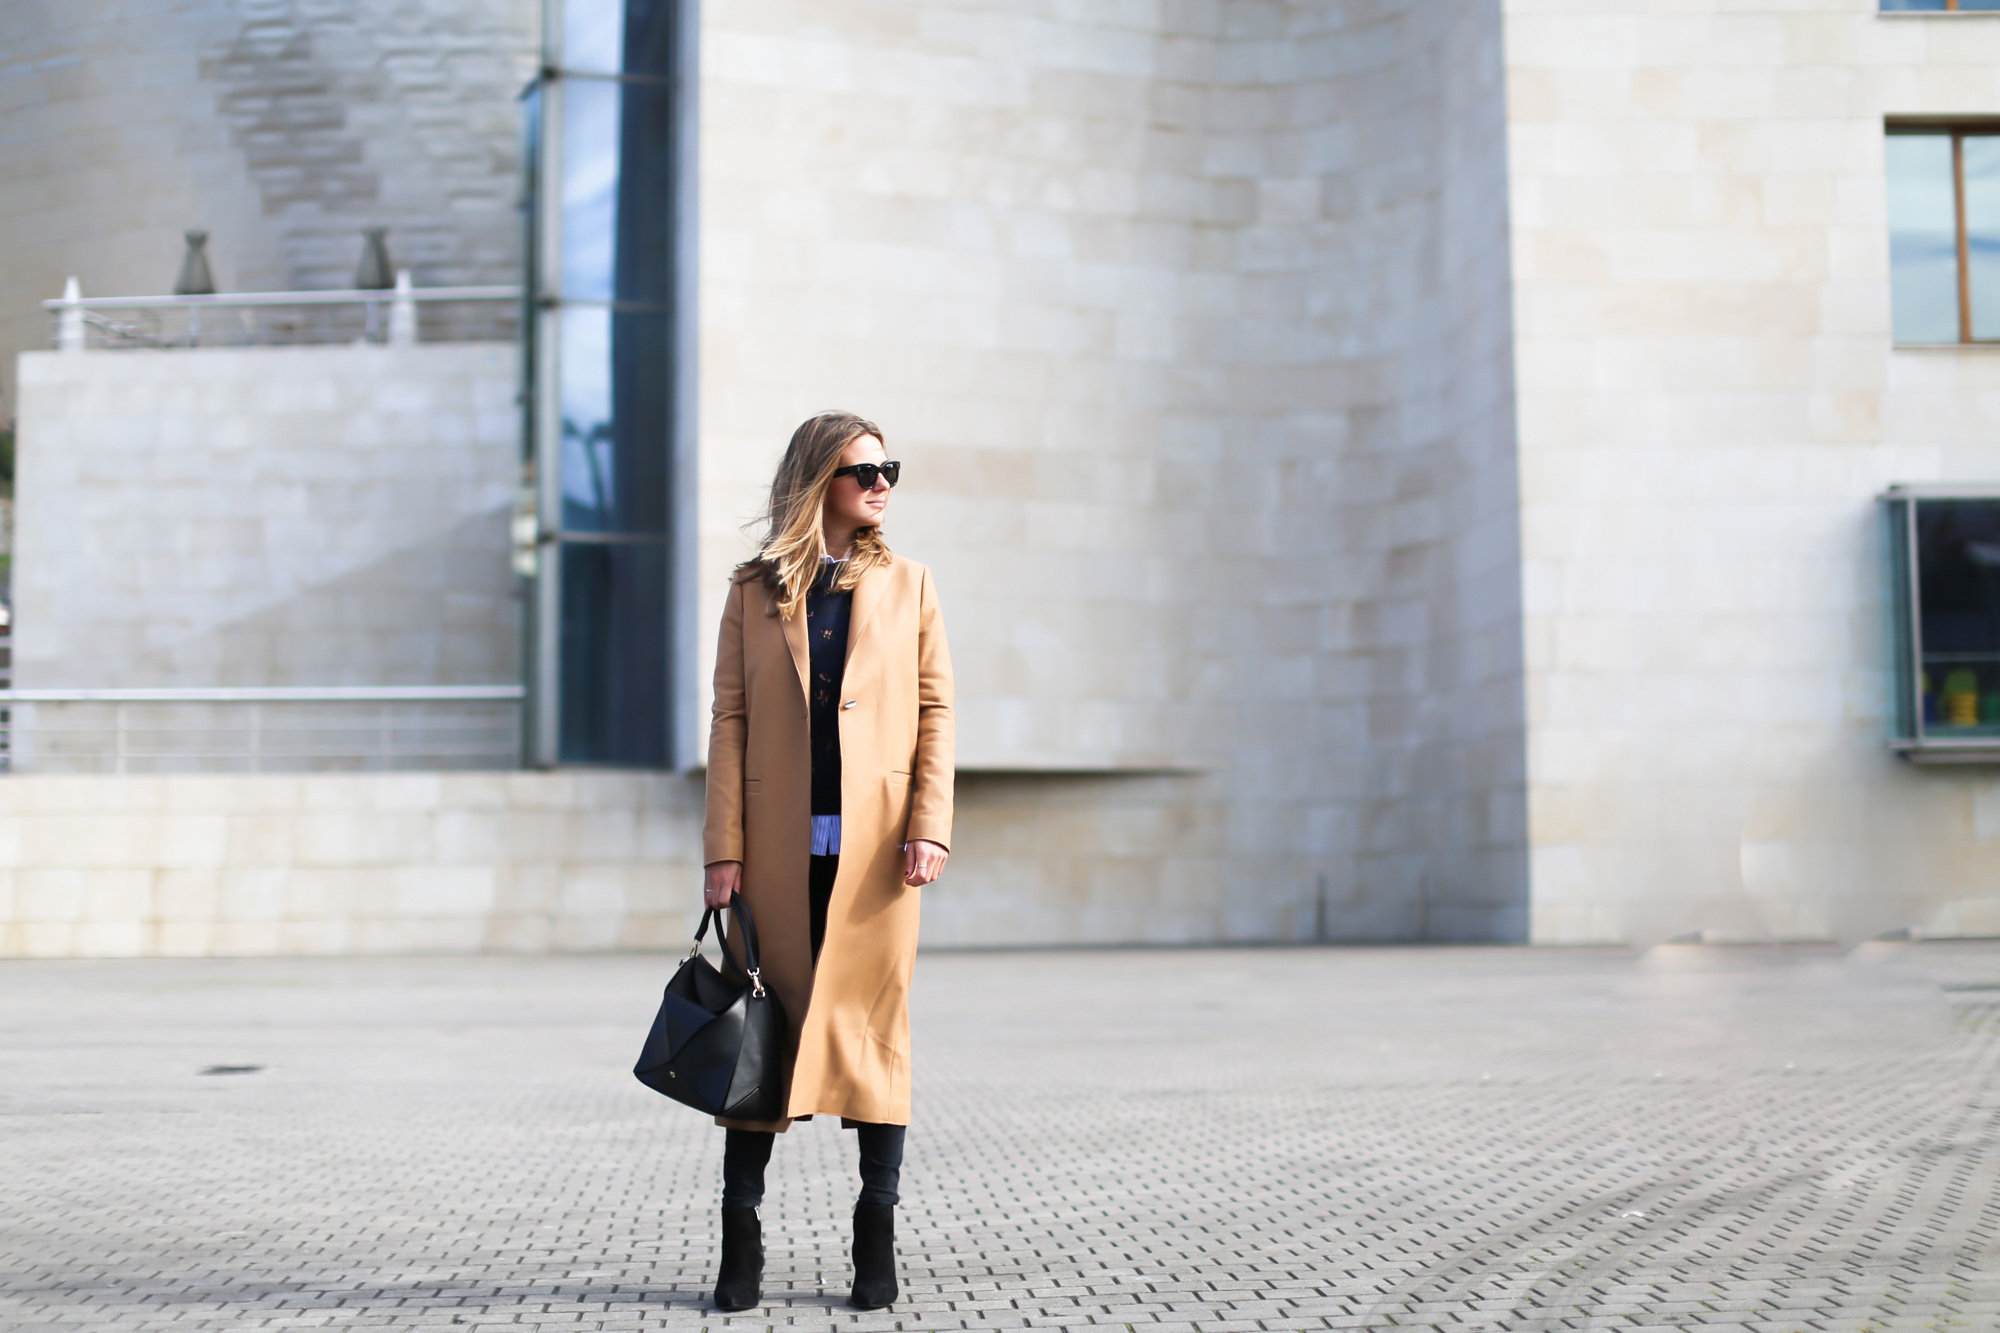 Clochet_streetstyle_fashionblogger_andotherstoriesbeigelongwoolcoat_&otherstoriessuedeankleboots-5